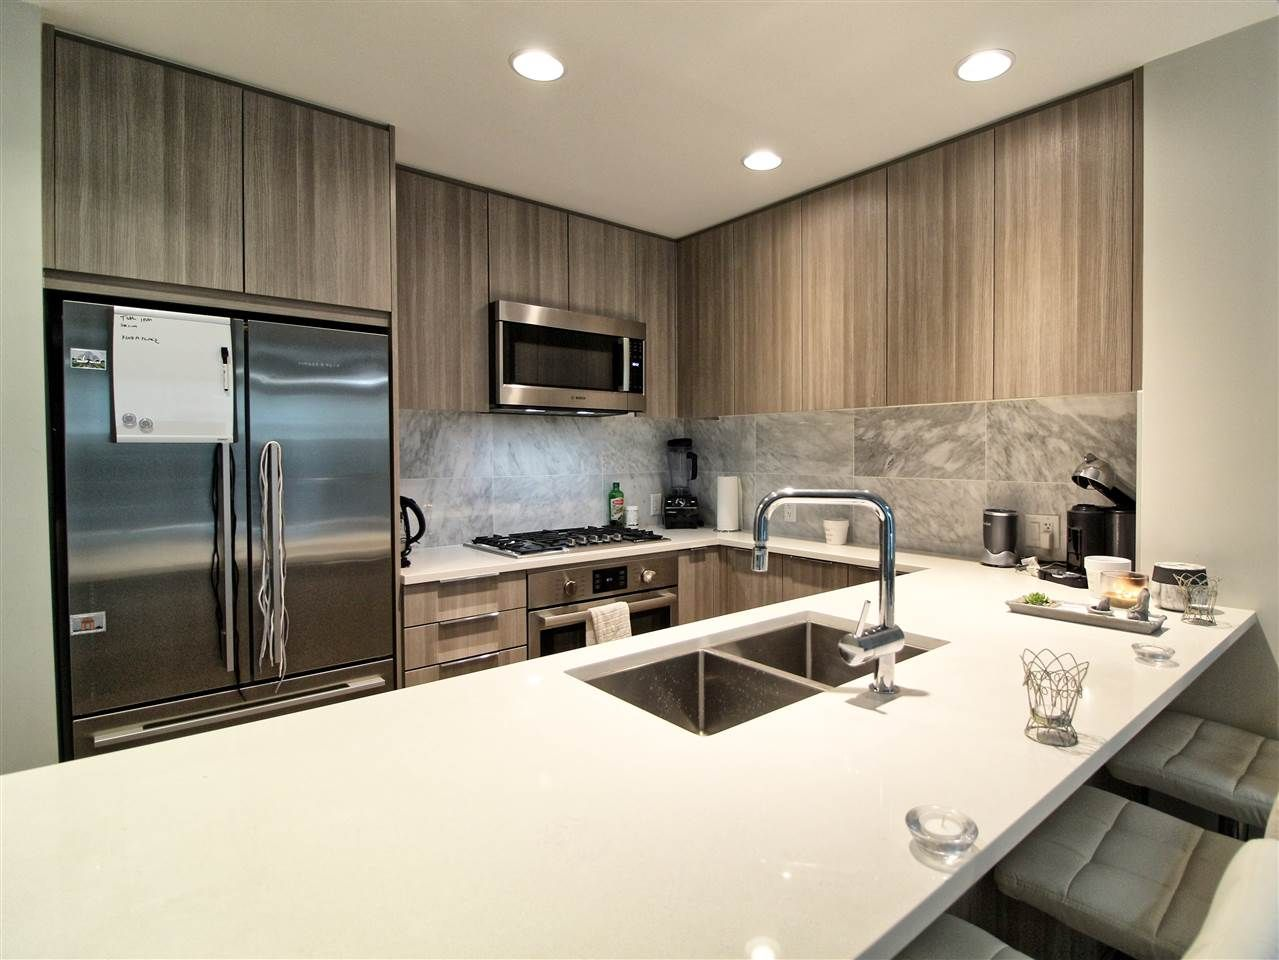 """Main Photo: 110 3289 RIVERWALK Avenue in Vancouver: South Marine Condo for sale in """"R+R"""" (Vancouver East)  : MLS®# R2499453"""